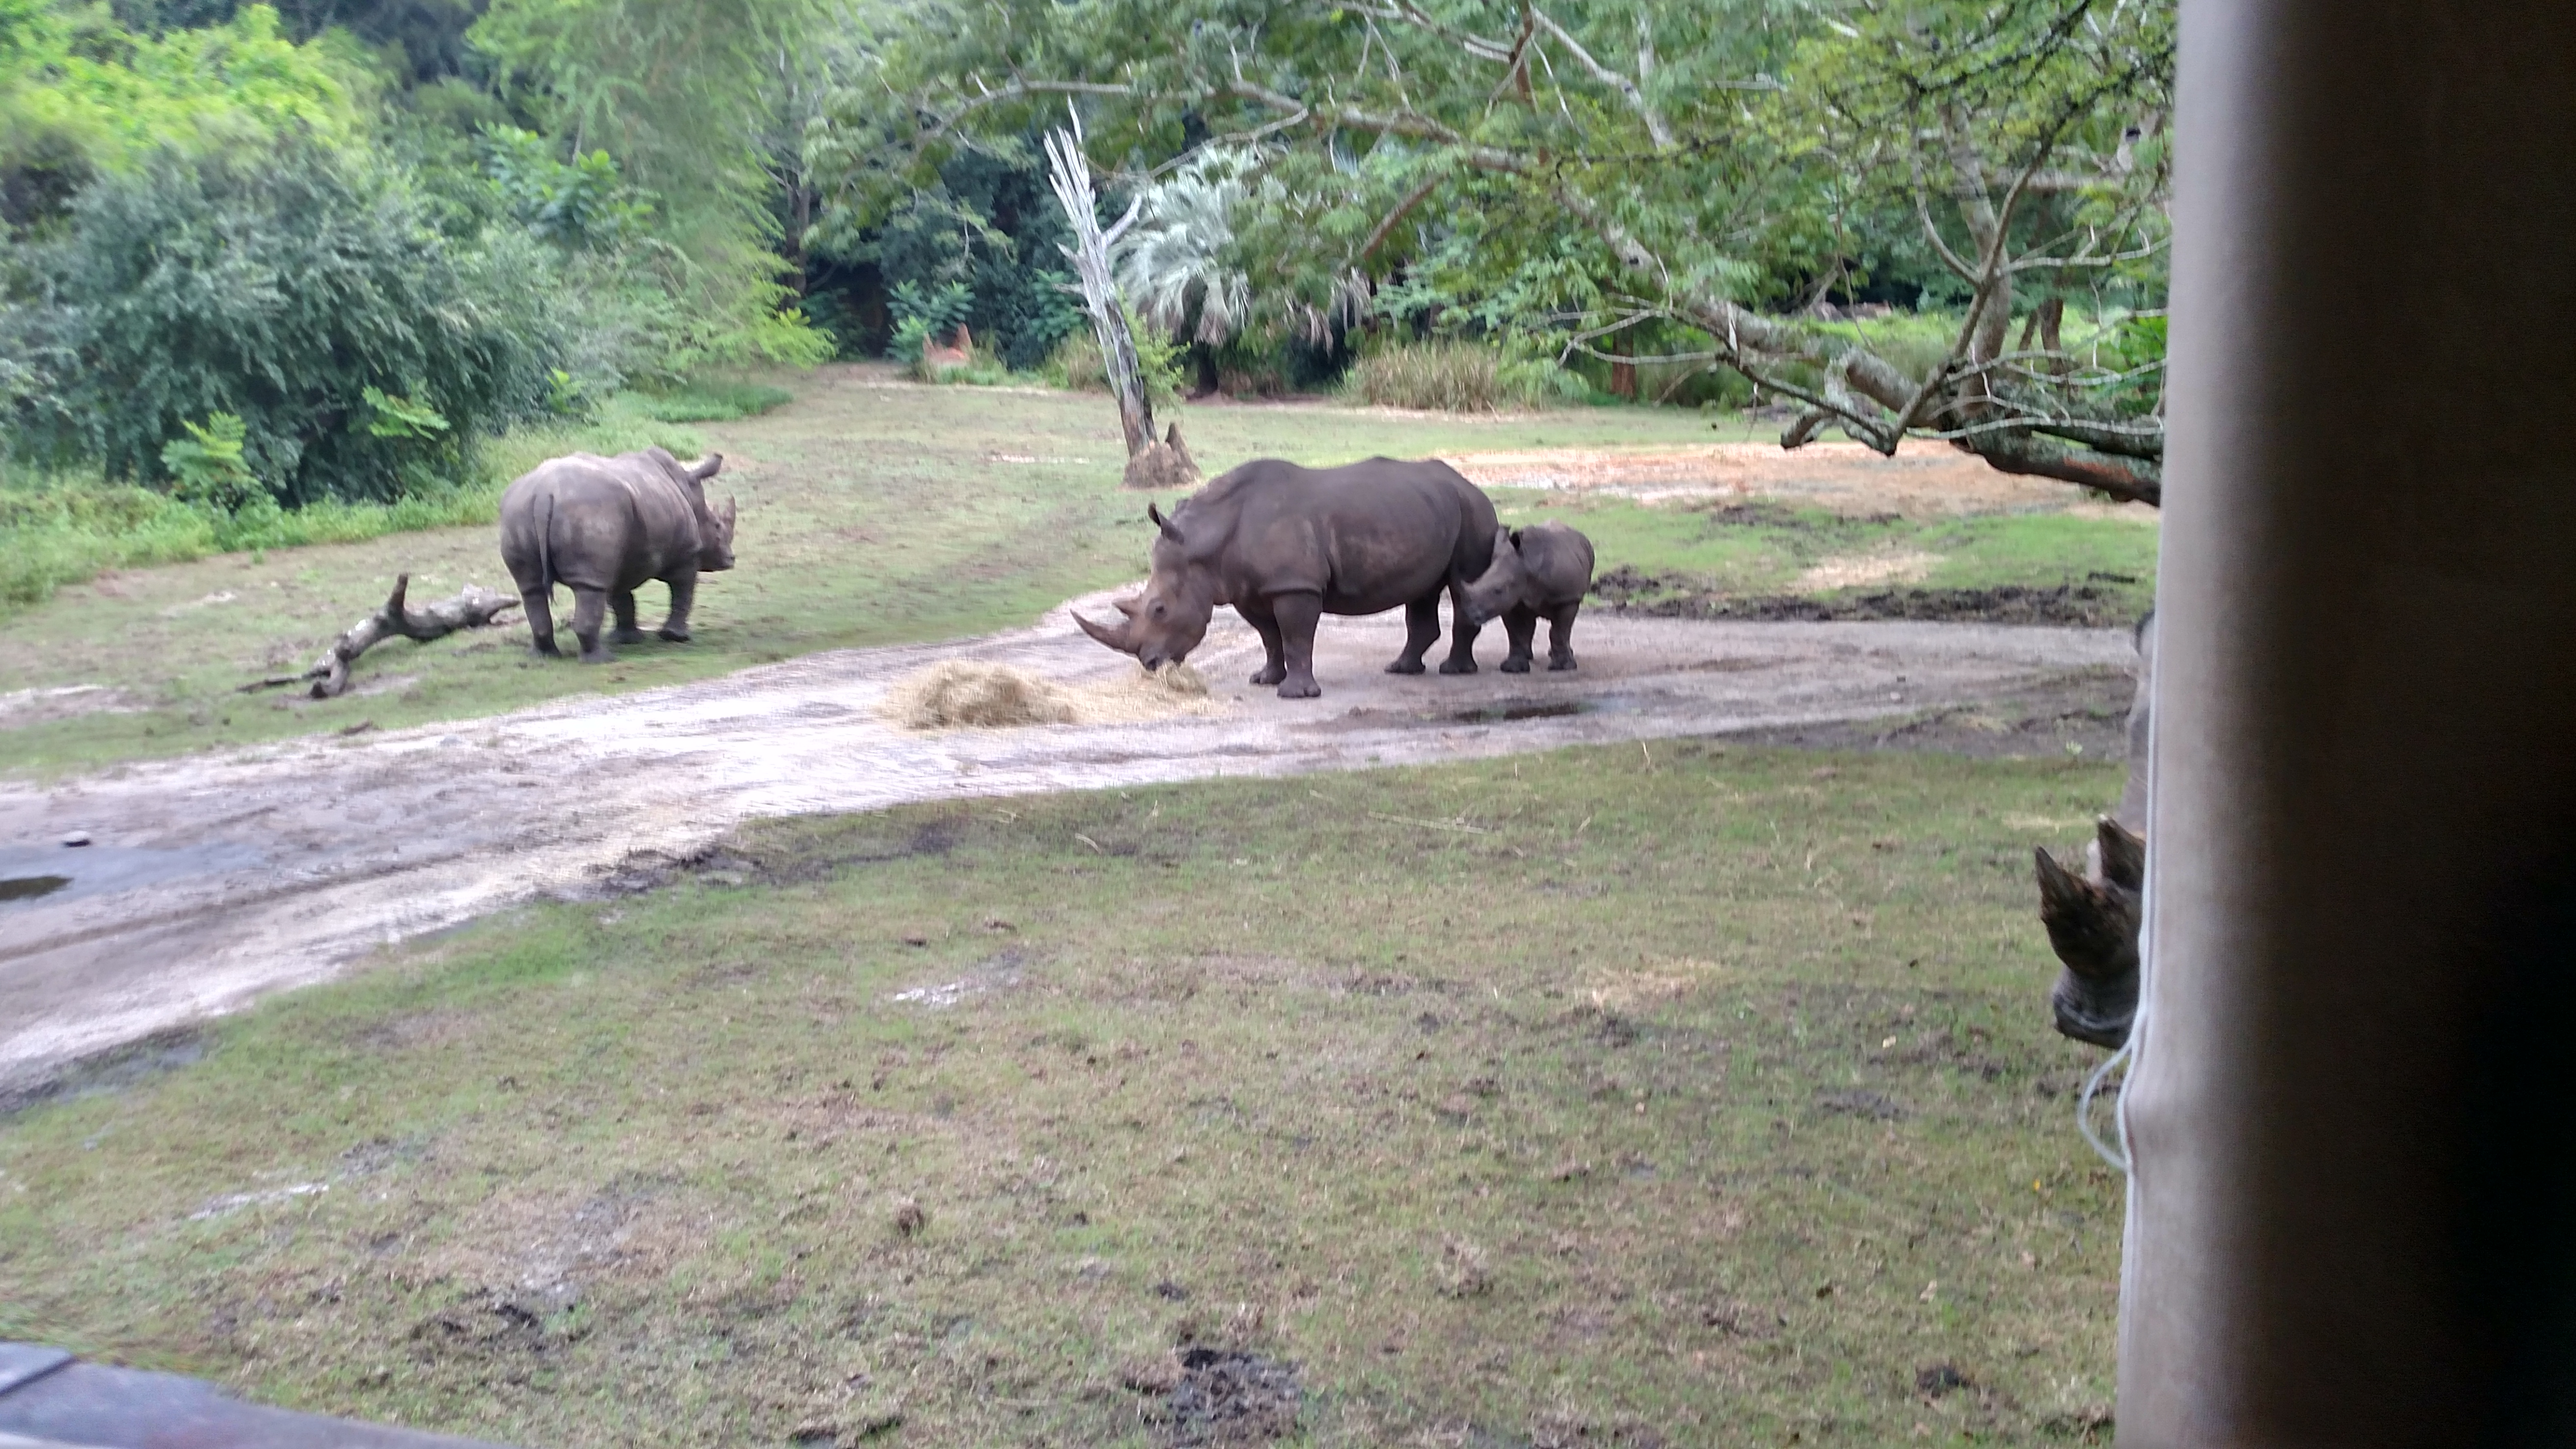 Rhinoceros enjoying the early morning temperatures